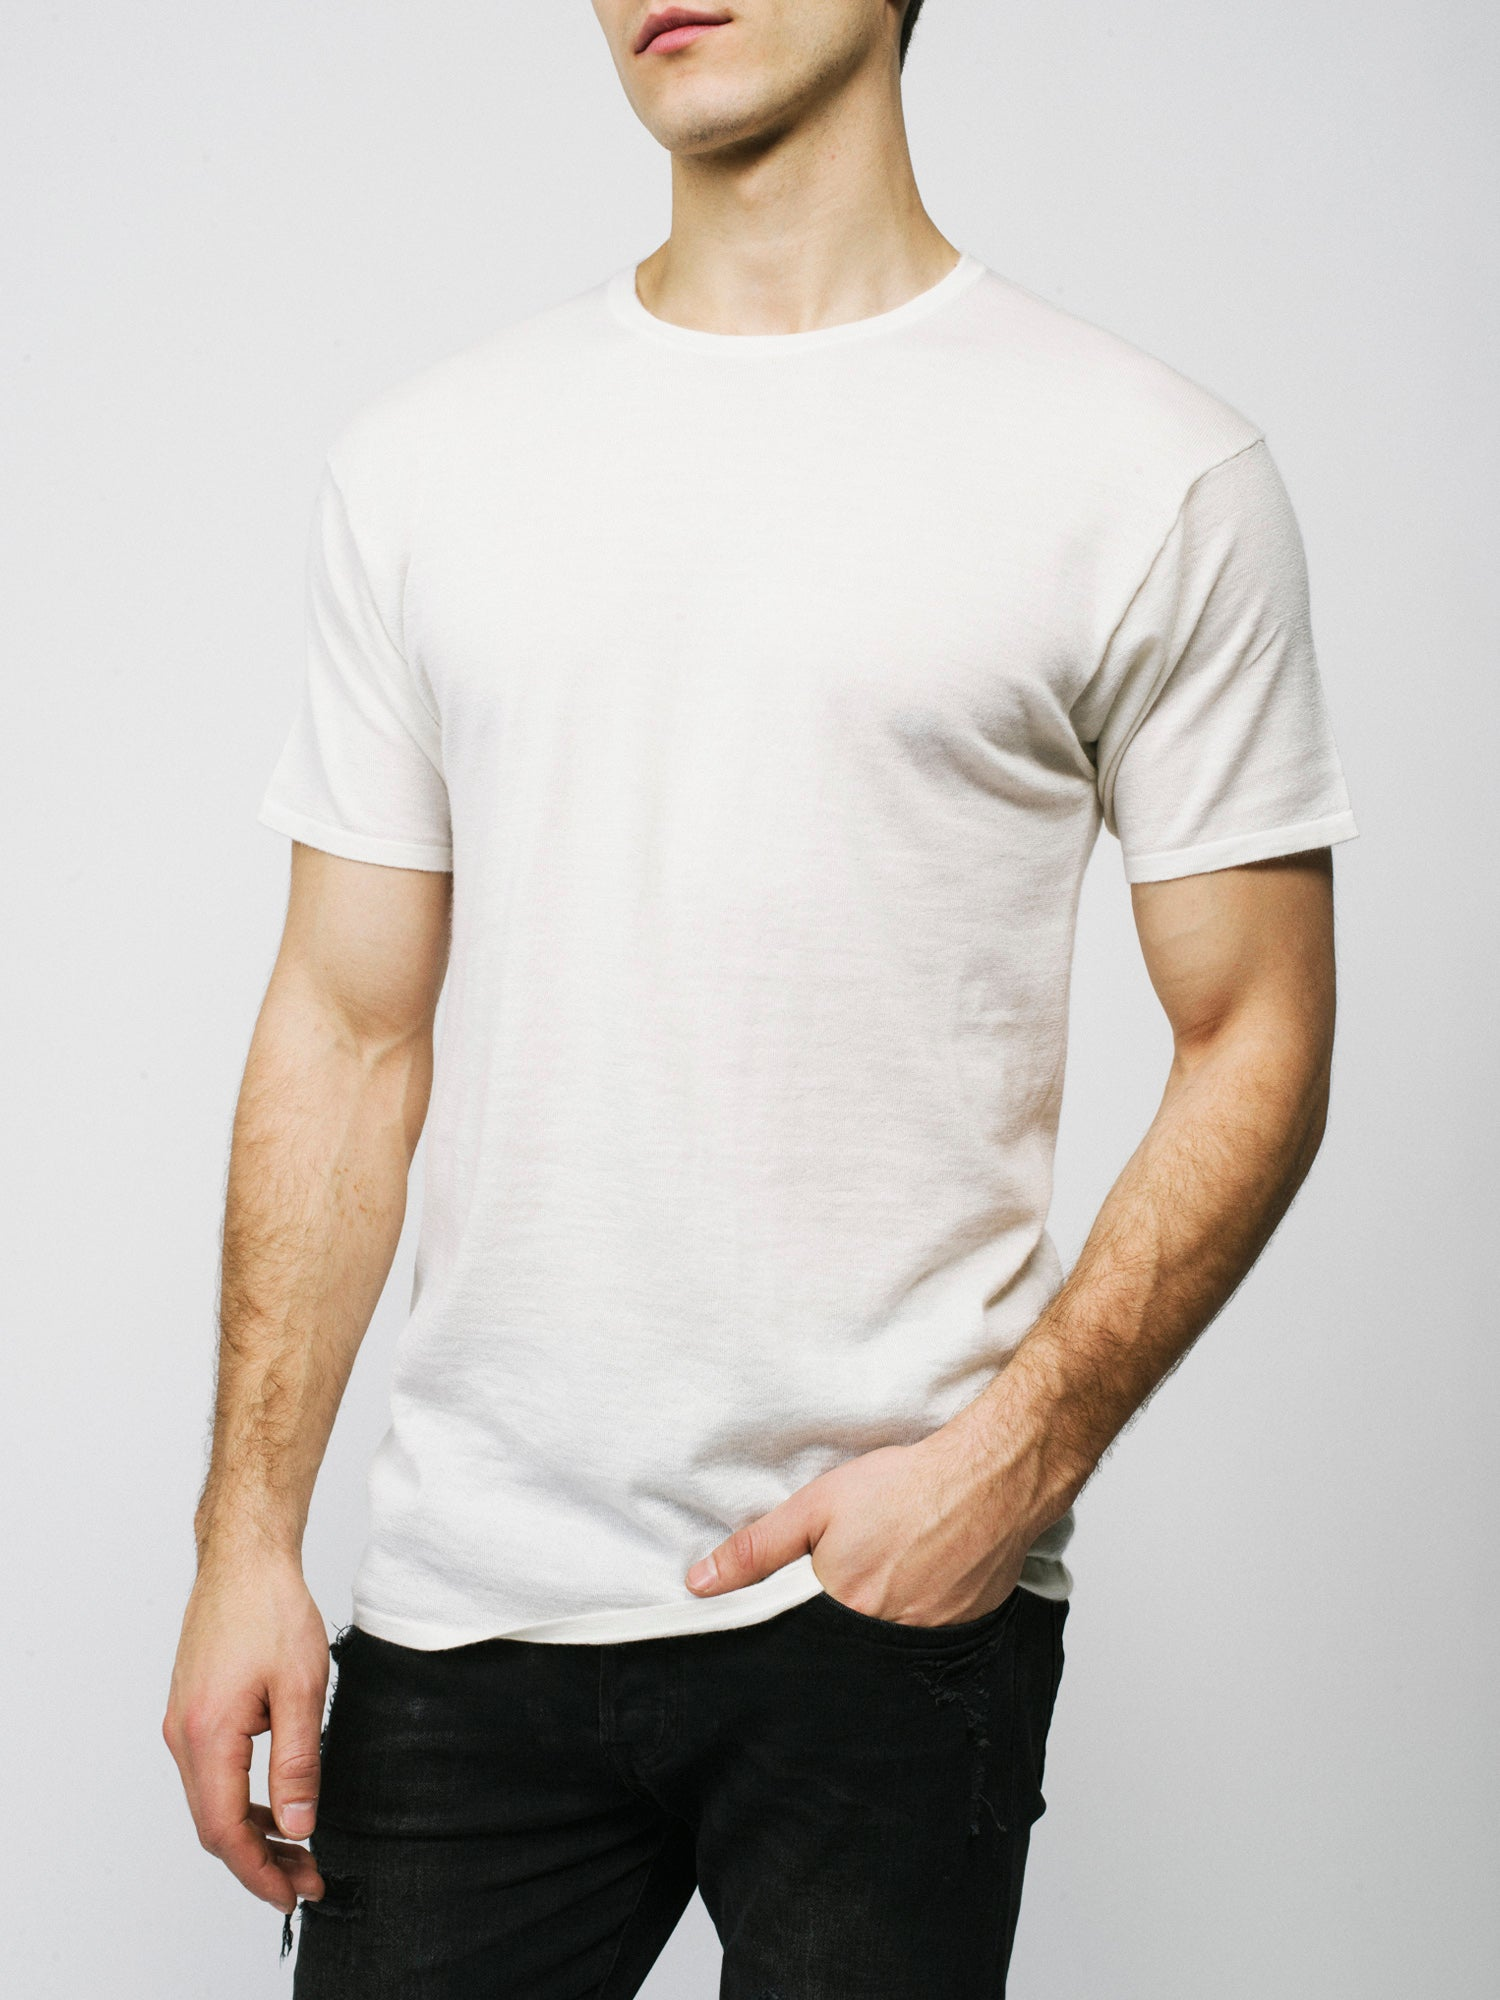 100% Cashmere T-Shirt - Men's Off White